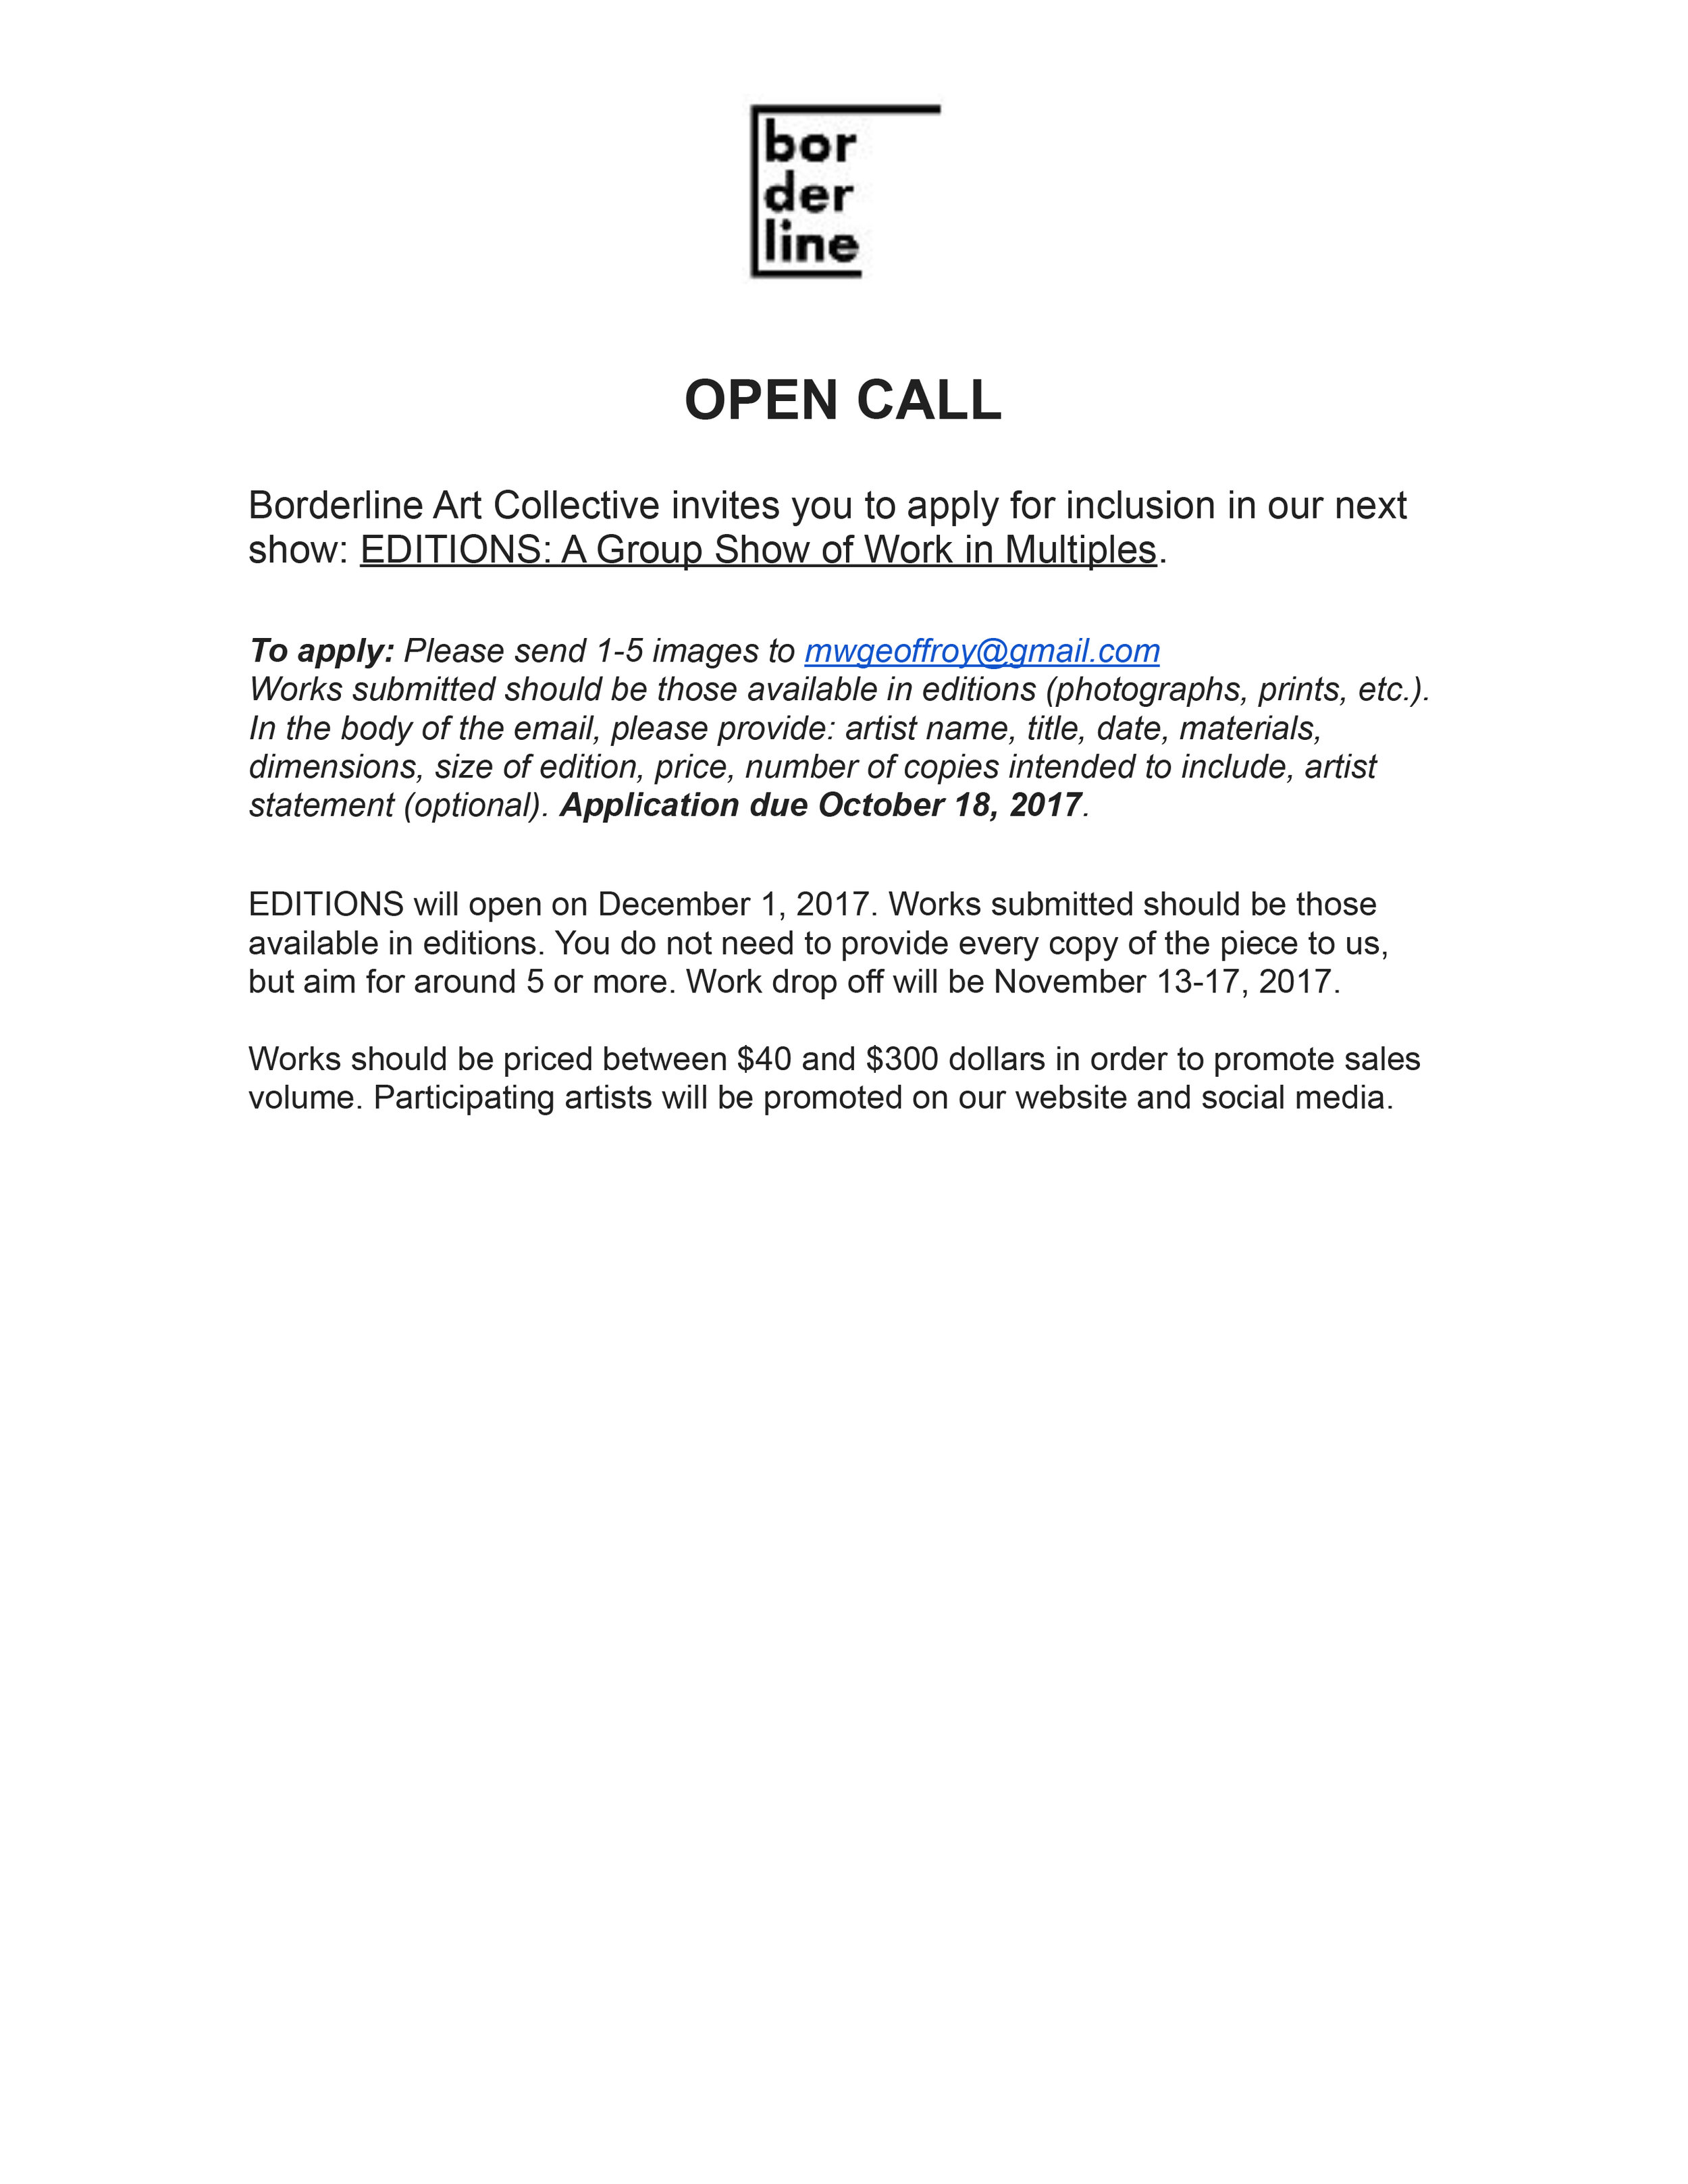 OPEN CALL - Editions.jpg